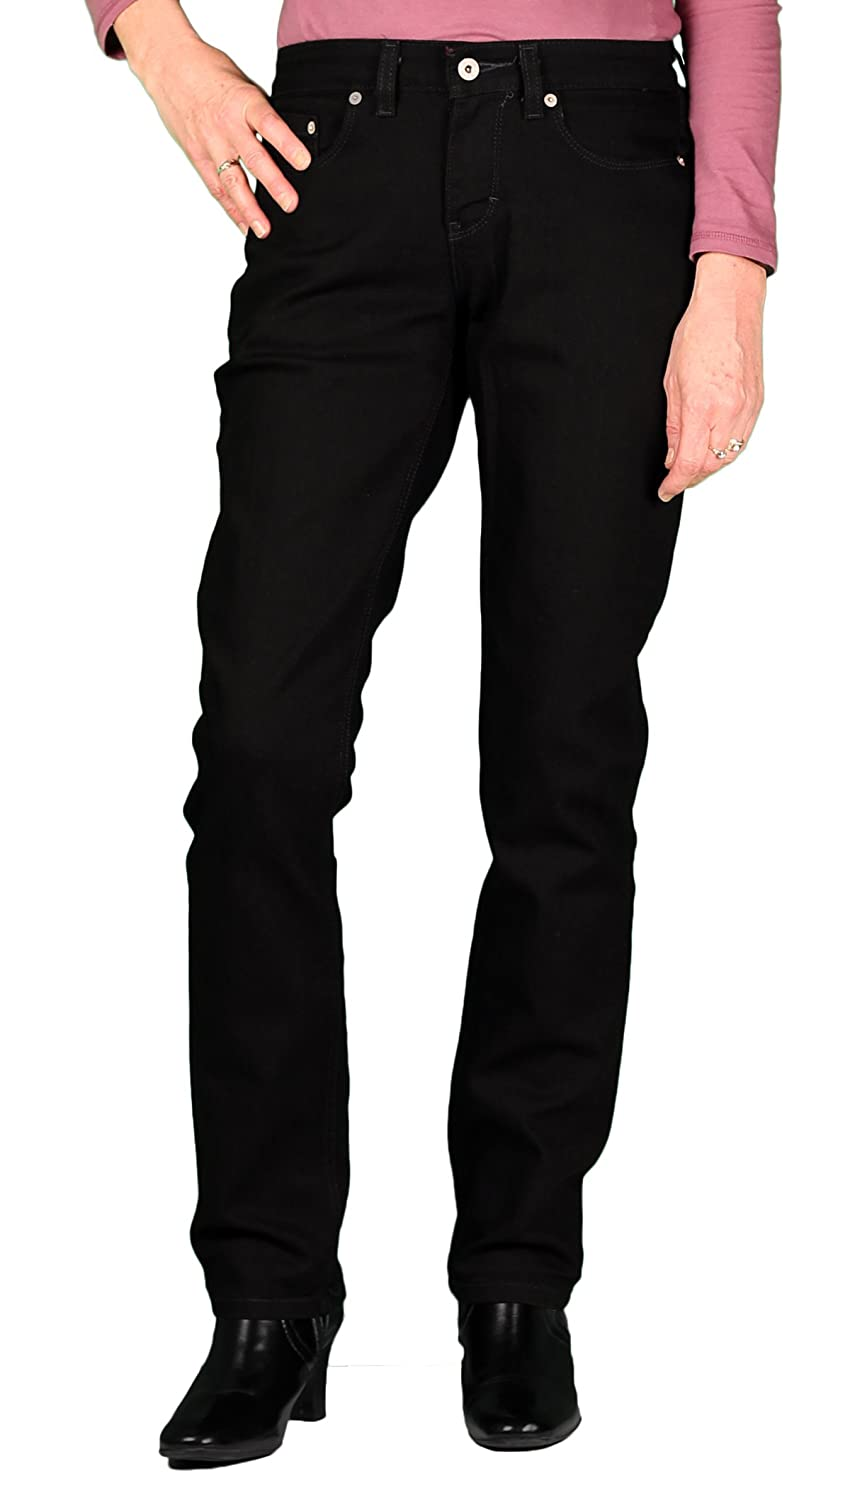 edc3b31af23033 74% Cotton, 25% Polyester, 1% Spandex Imported Classic 5-Pocket Styling  Straight Leg Stretch Fabric Contoured No-Gap Waistband Curvy Fit